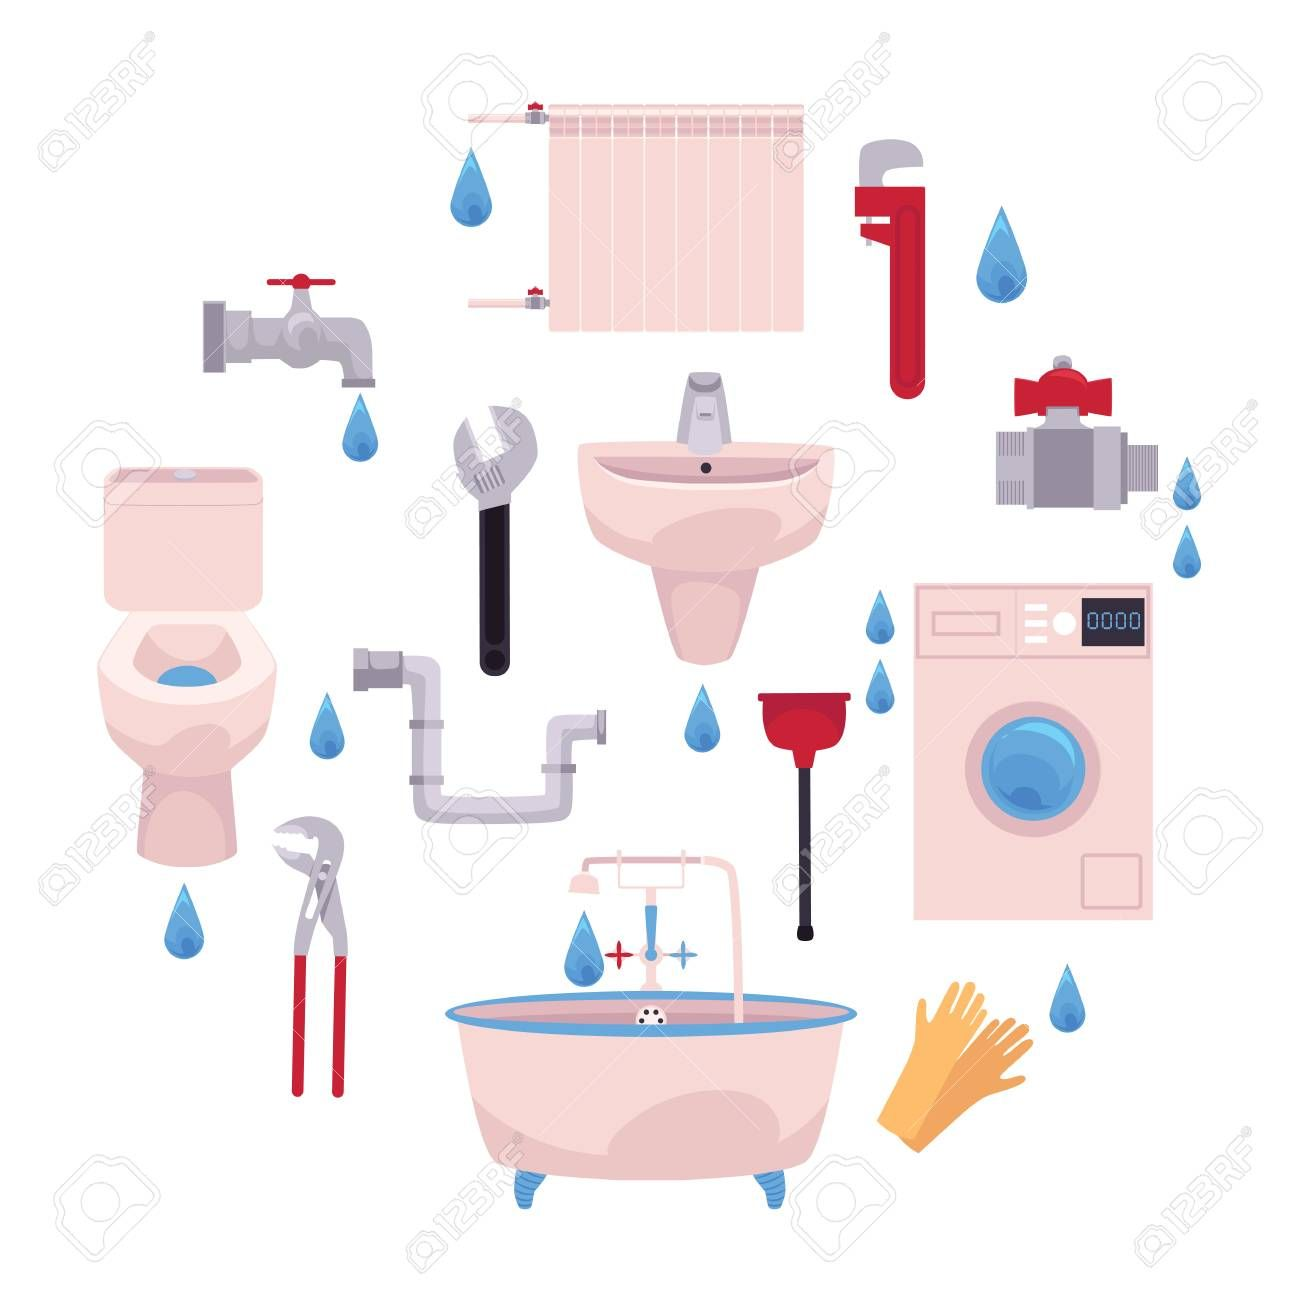 Vector Cartoon Flat Plumbing Tools Equipment Set Bath Tube Sink Washing Machine Toilet Bowl Gloves Adjus Bath Tube Plumbing Tools Water Valves